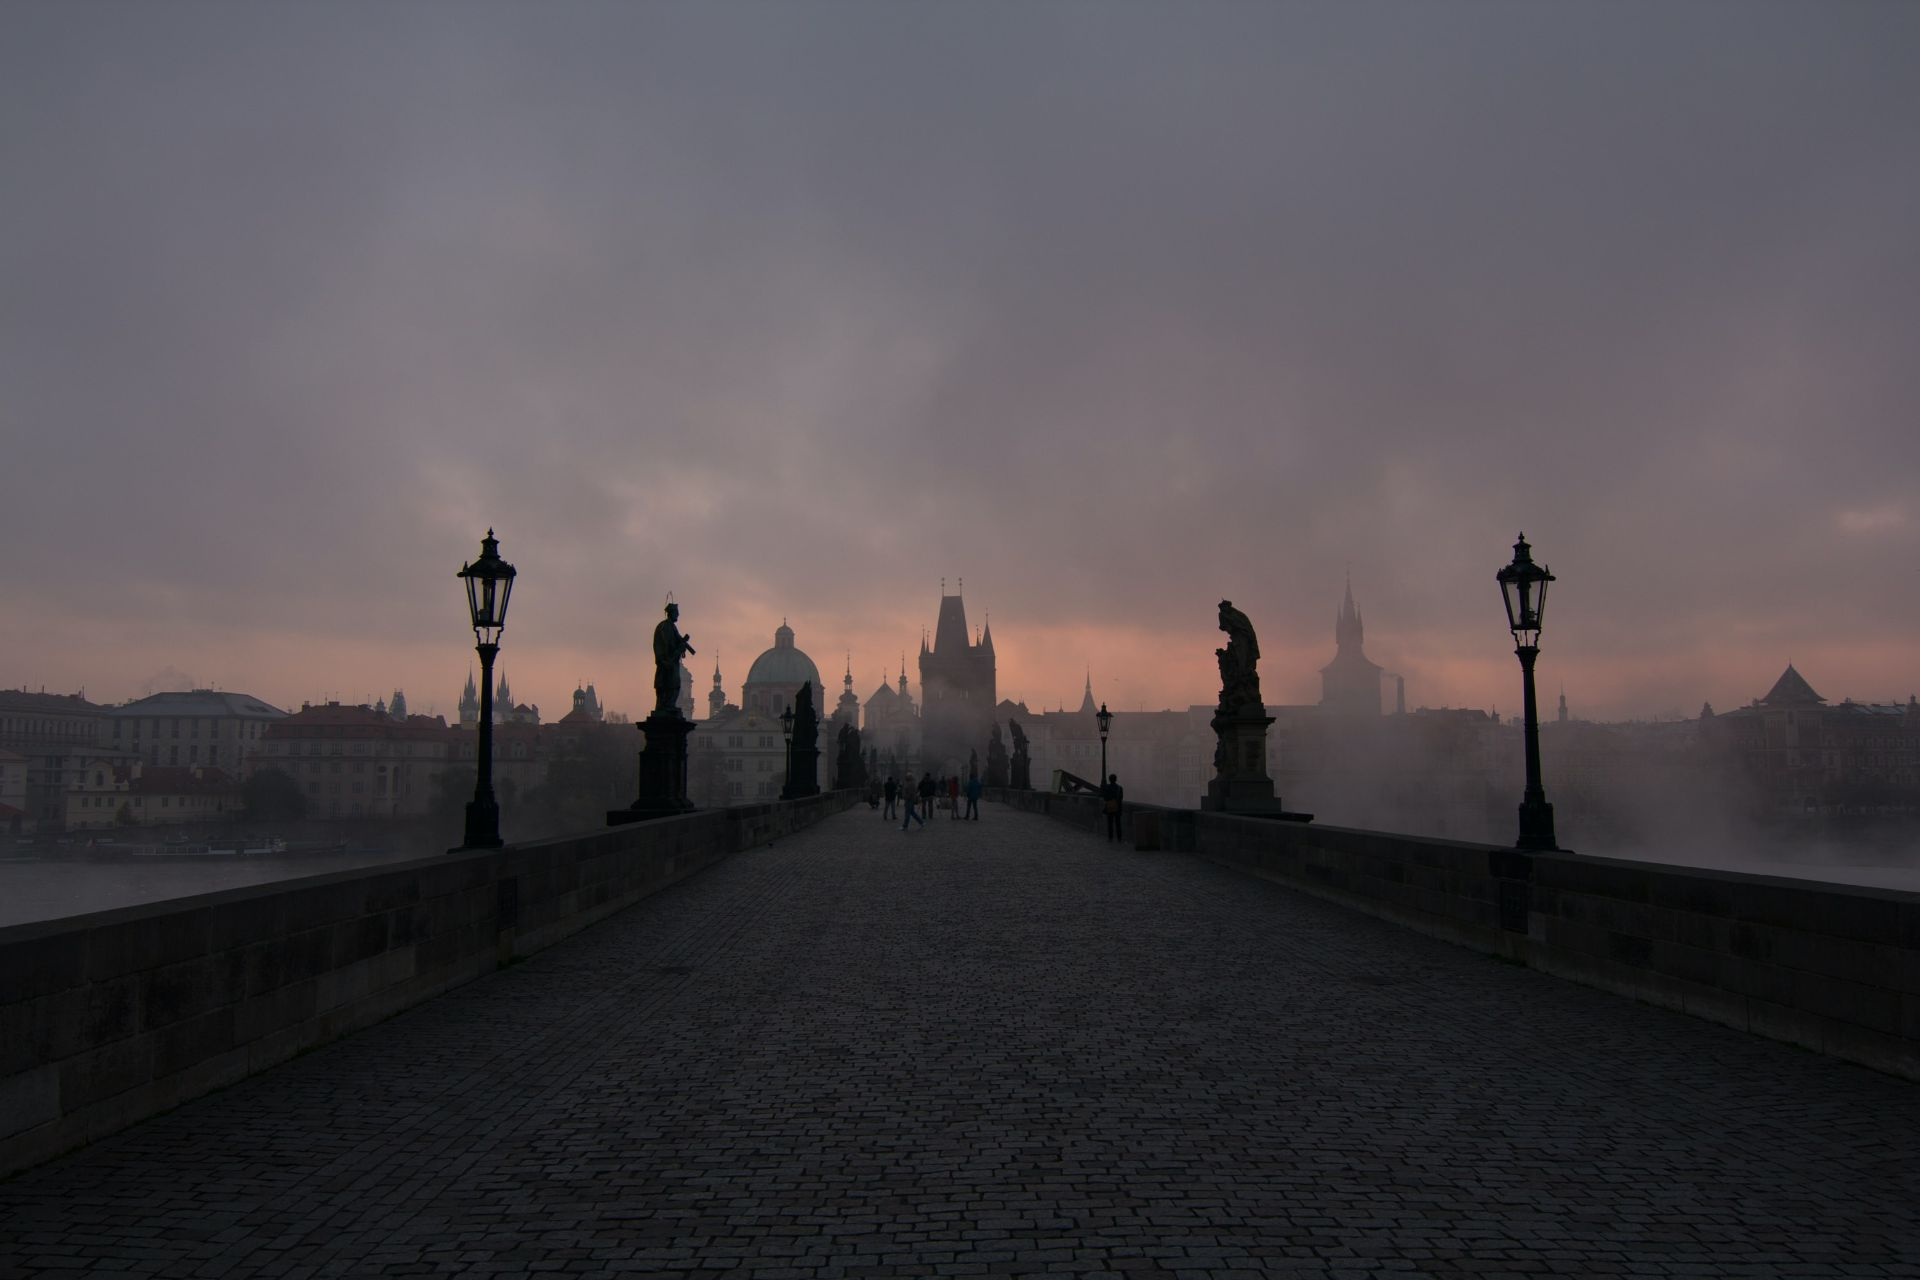 The pink sun rising over Charles Bridge in Prague